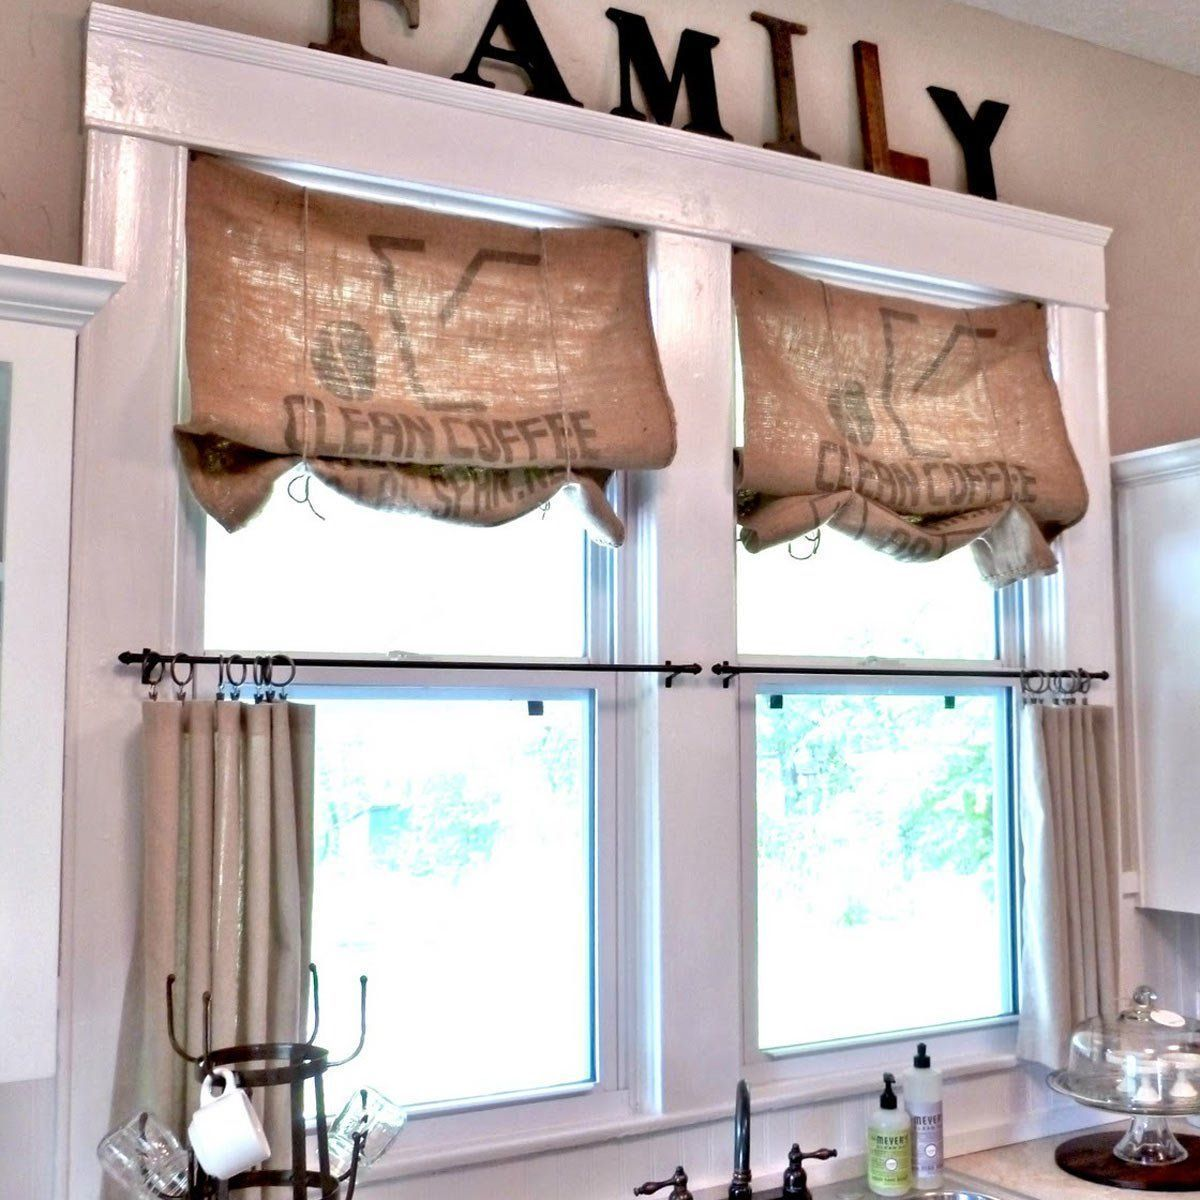 10 Awesome Ideas for Window Treatments #windowtreatments 9+ Stylish Window Treatment Ideas for Your Room | Tags: window treatment designs,  window treatment design tips,  window treatment design ideas,  north shore window treatments and design,  #windowtreatment #windowdesign  #windowtreatmentsrobesondesign #burlapwindowtreatments 10 Awesome Ideas for Window Treatments #windowtreatments 9+ Stylish Window Treatment Ideas for Your Room | Tags: window treatment designs,  window treatment design tip #burlapwindowtreatments